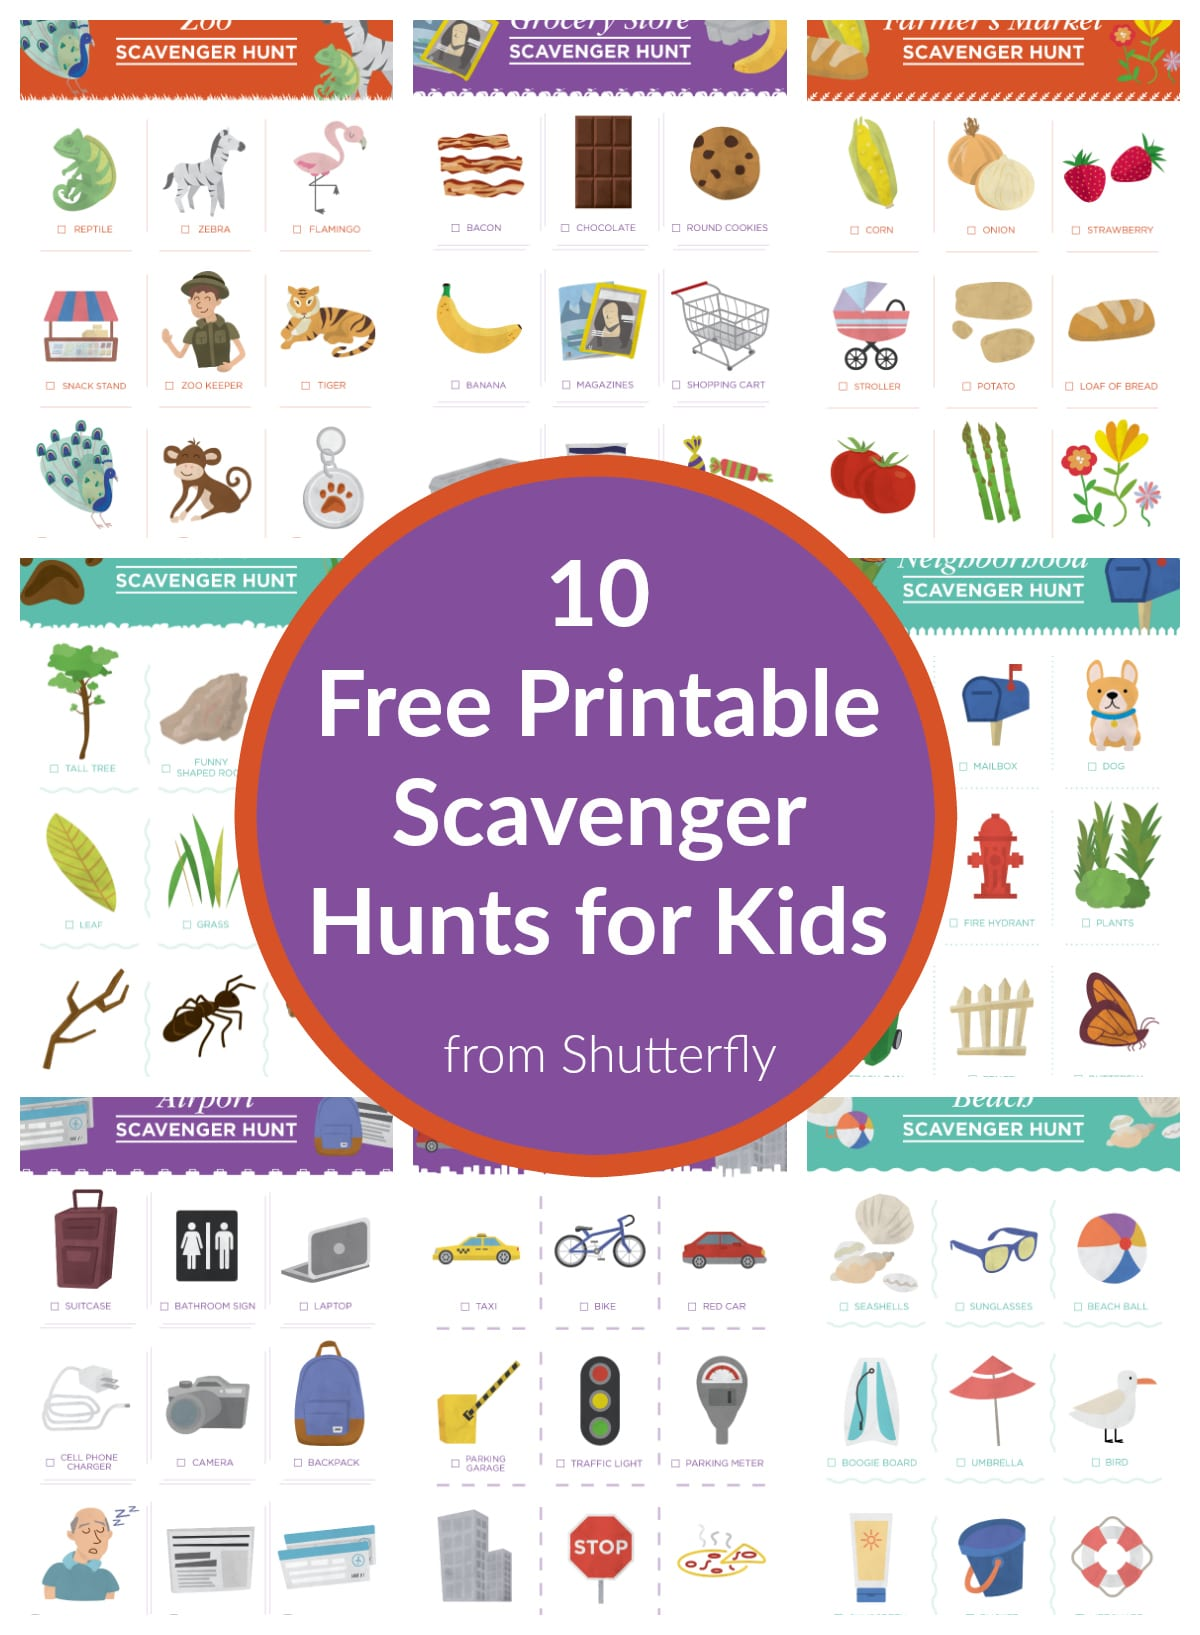 photo relating to Scavenger Hunt Printable named 10 No cost Scavenger Hunt Printables for Youngsters in opposition to Shutterfly